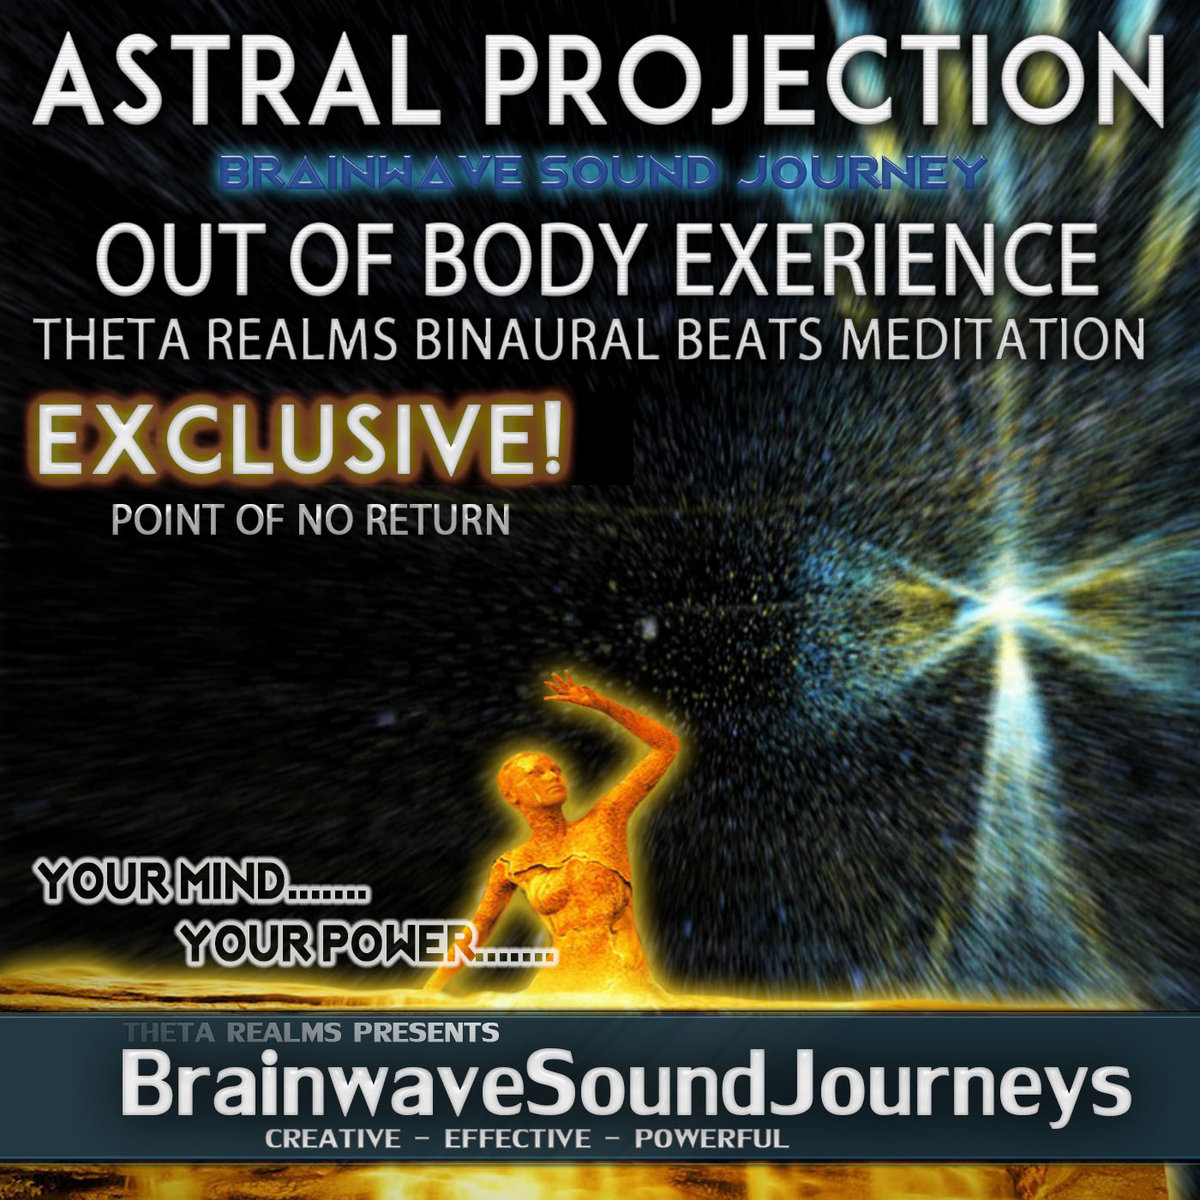 THE POINT OF NO RETURN - Astral Projection | Out Of Body Experience